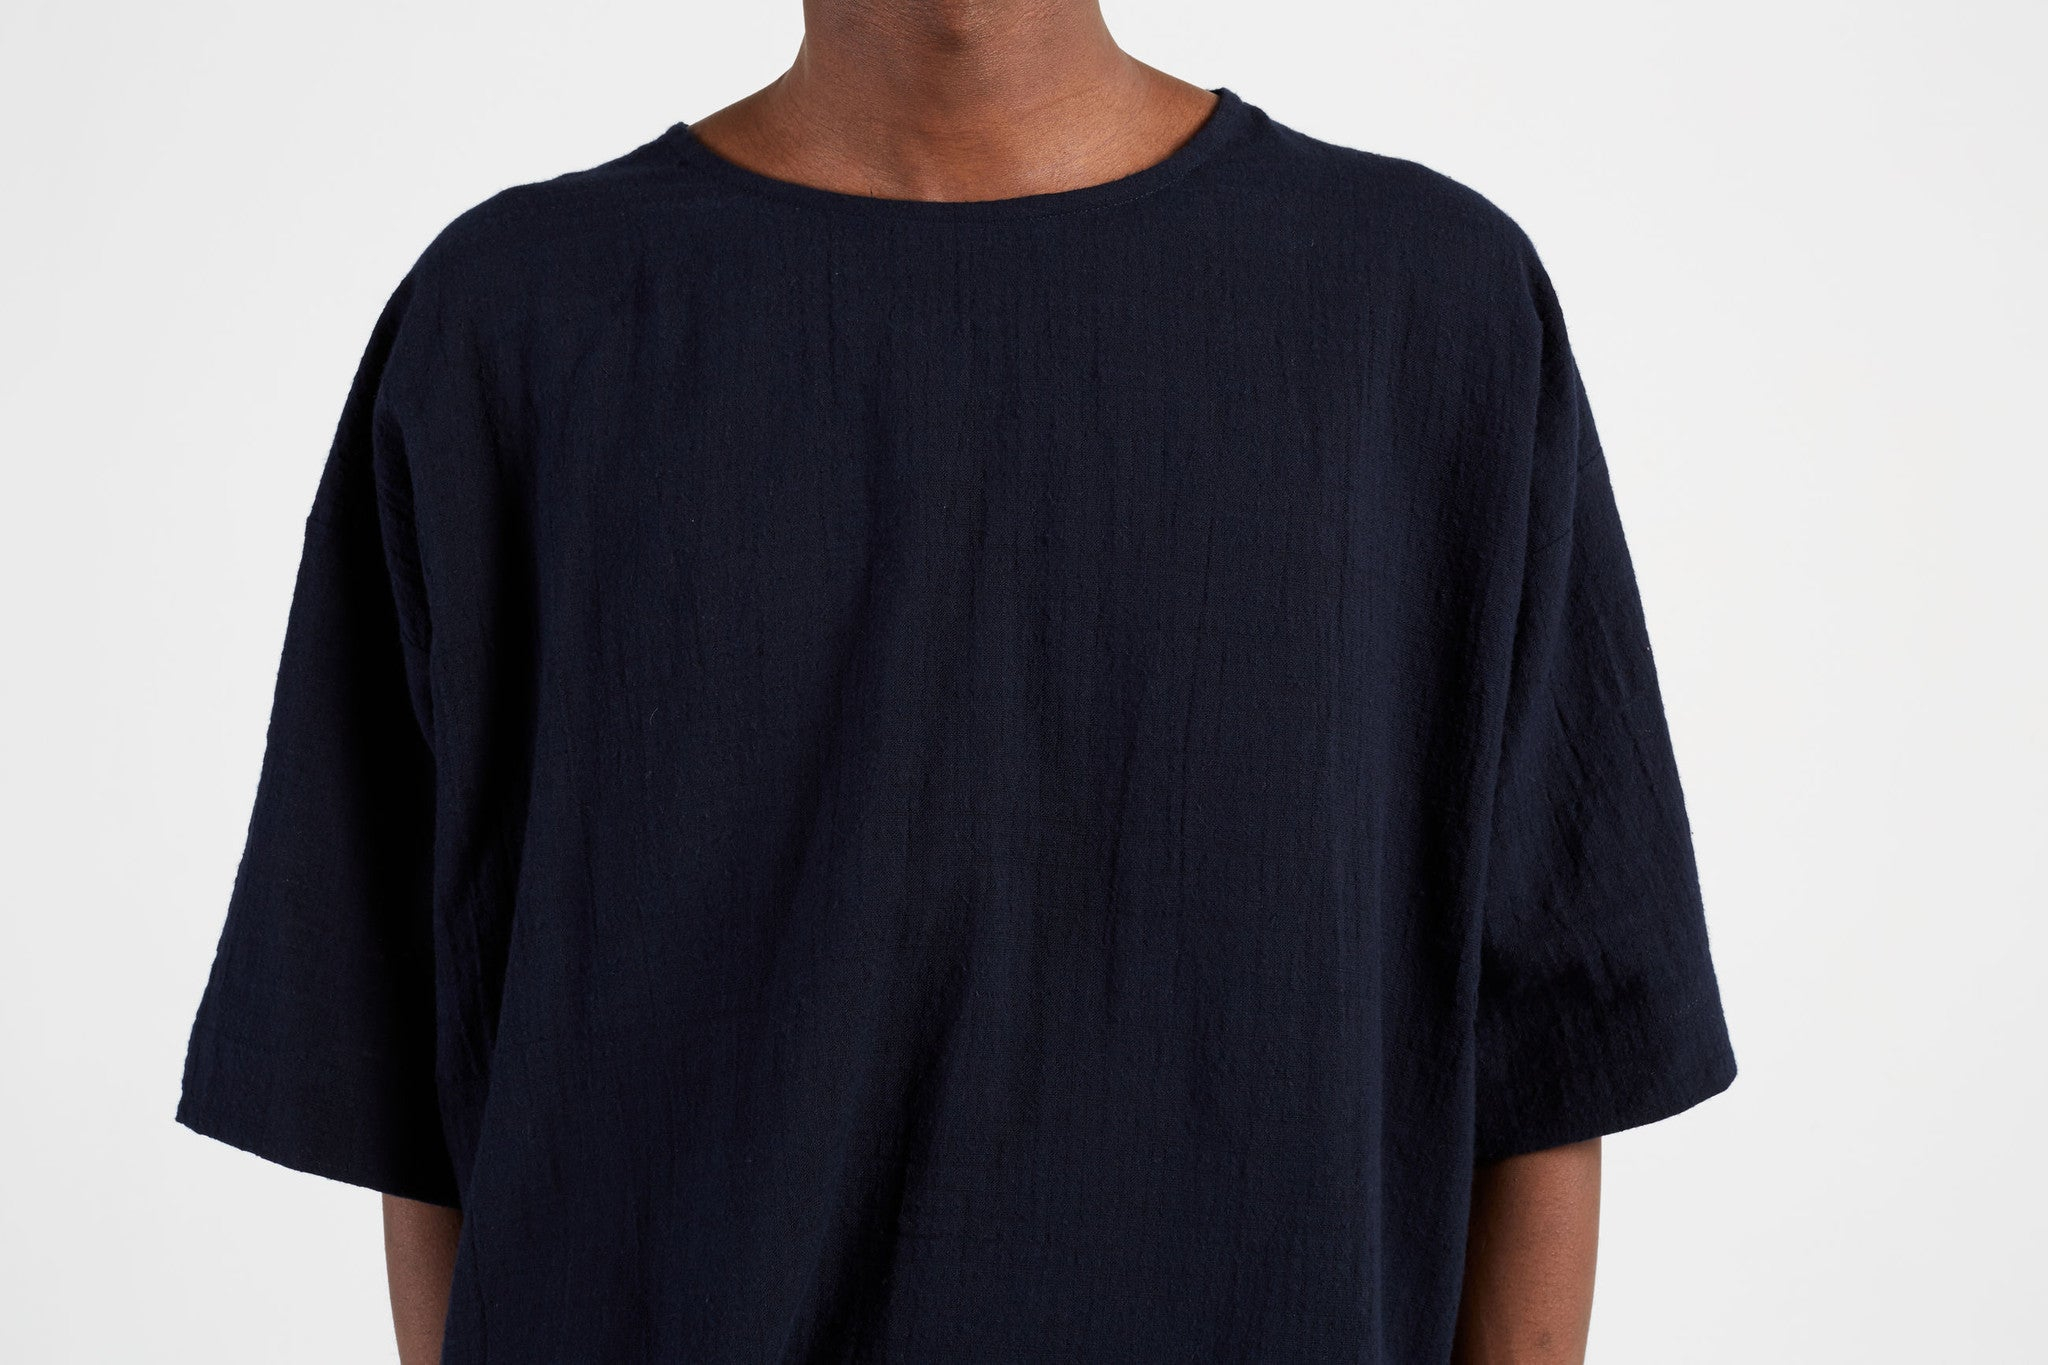 422338a9e37e7 Études Studio - Powder Navy Tops – Emporium of the Modern Man